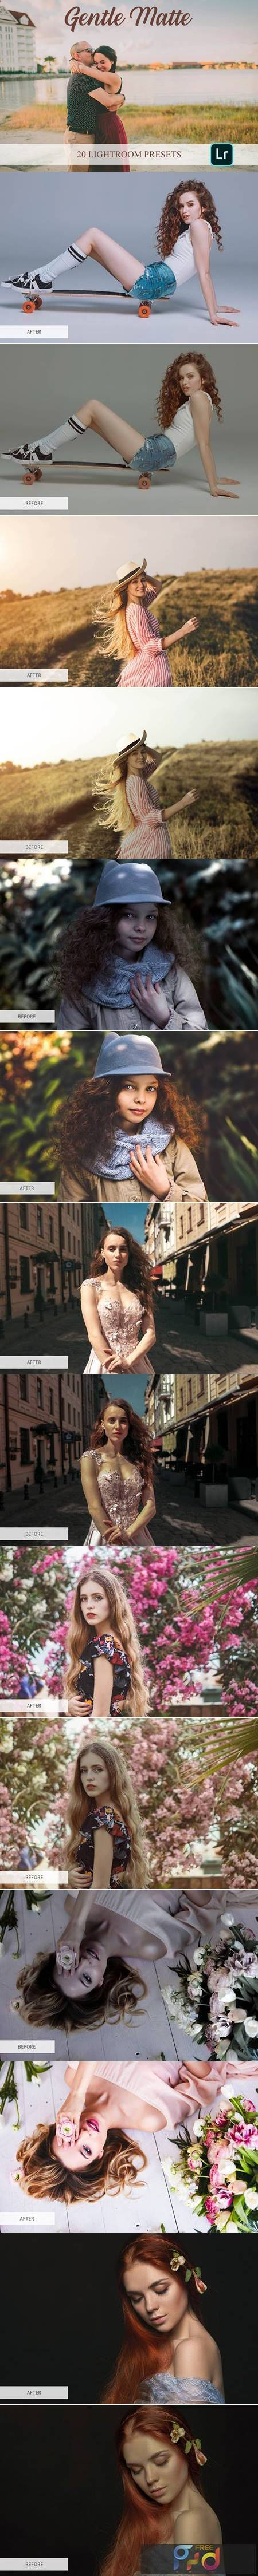 Lightroom Presets - Gentle Matte 4820446 1